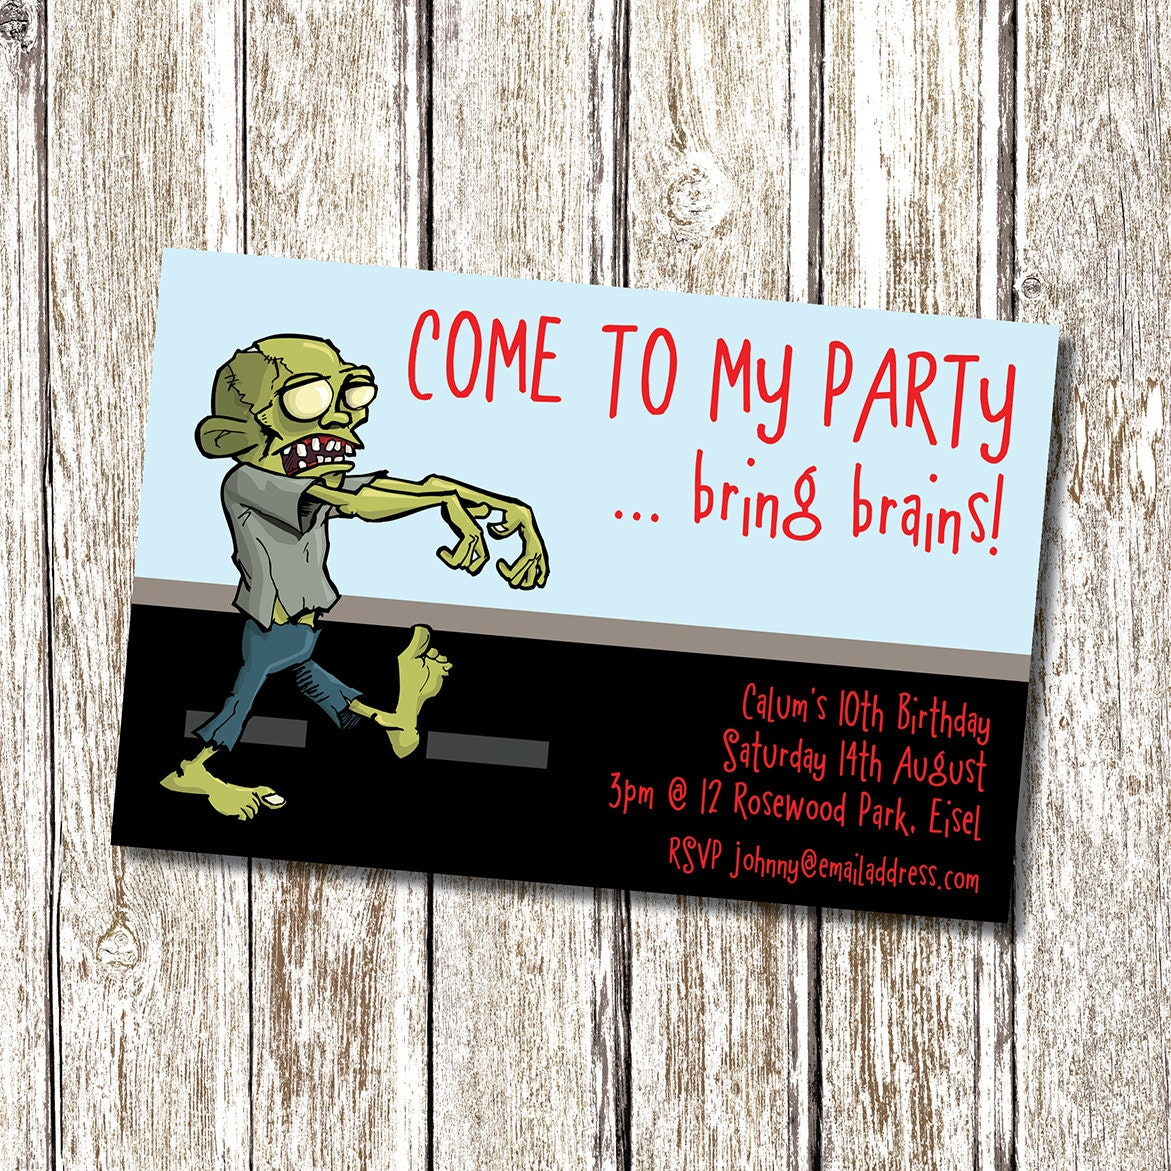 Zombie birthday party invitation printable and personalised zoom kristyandbryce Choice Image